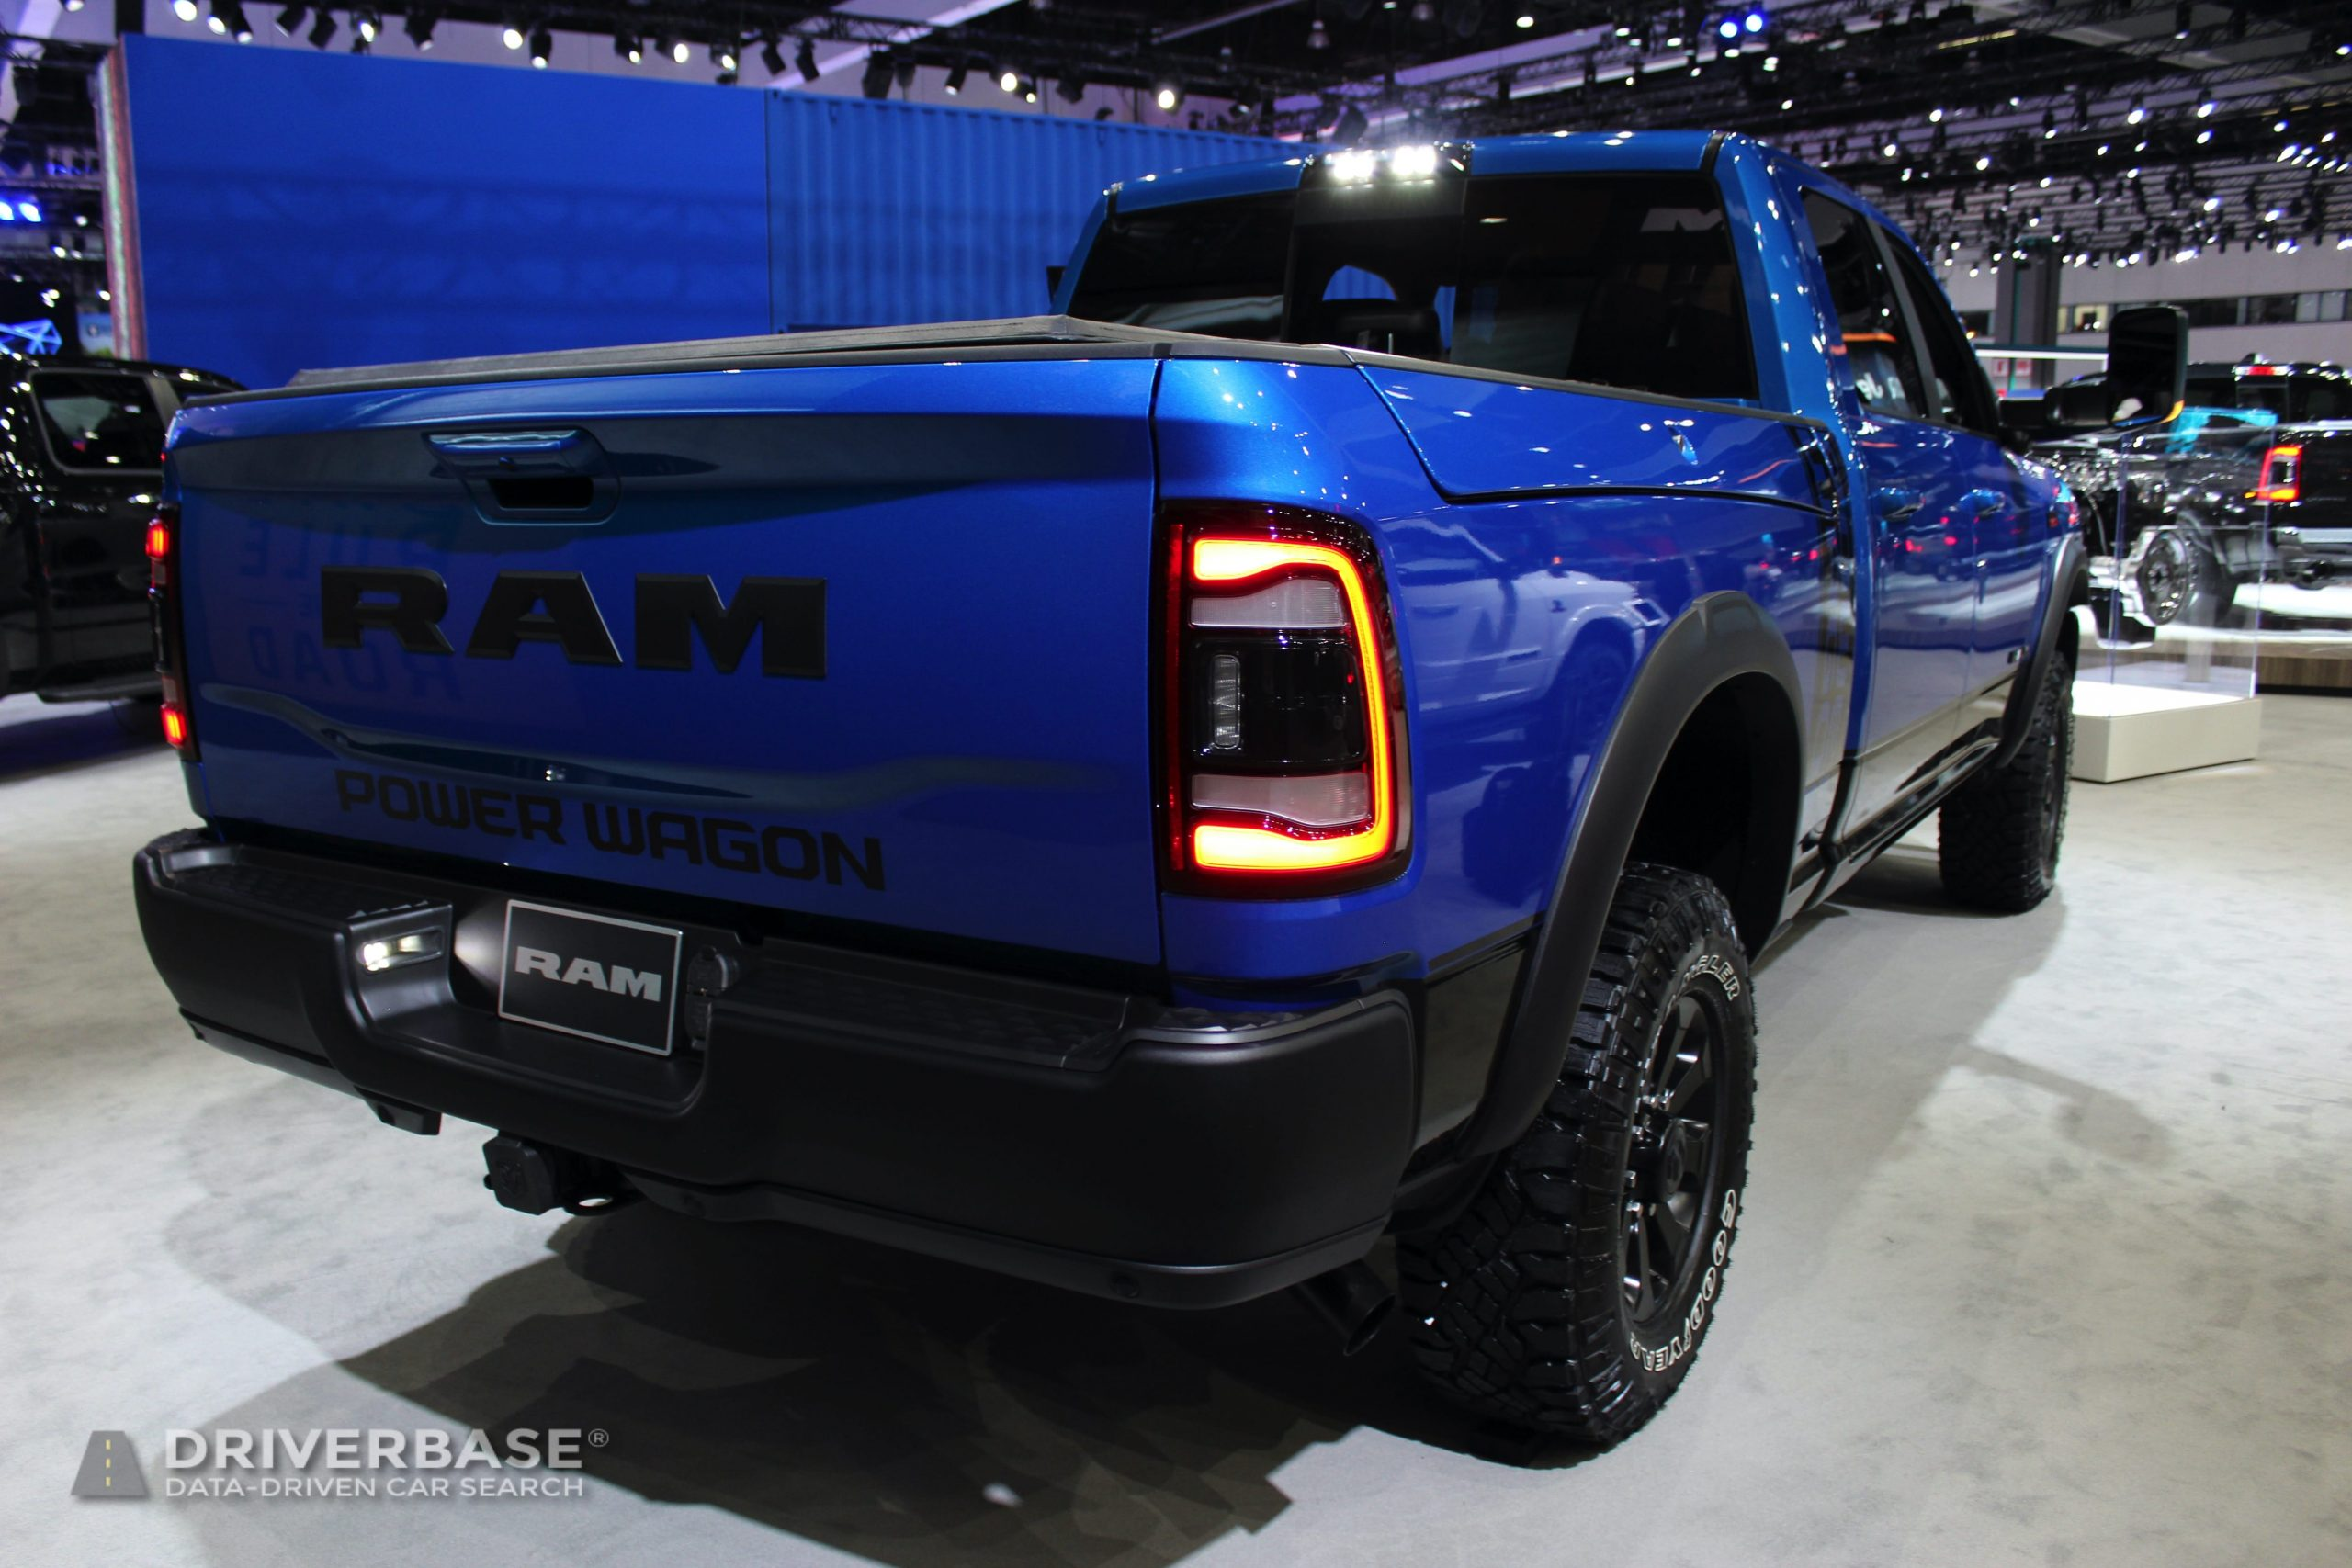 2020 Ram 2500 Powerwagon at the 2019 Los Angeles Auto Show